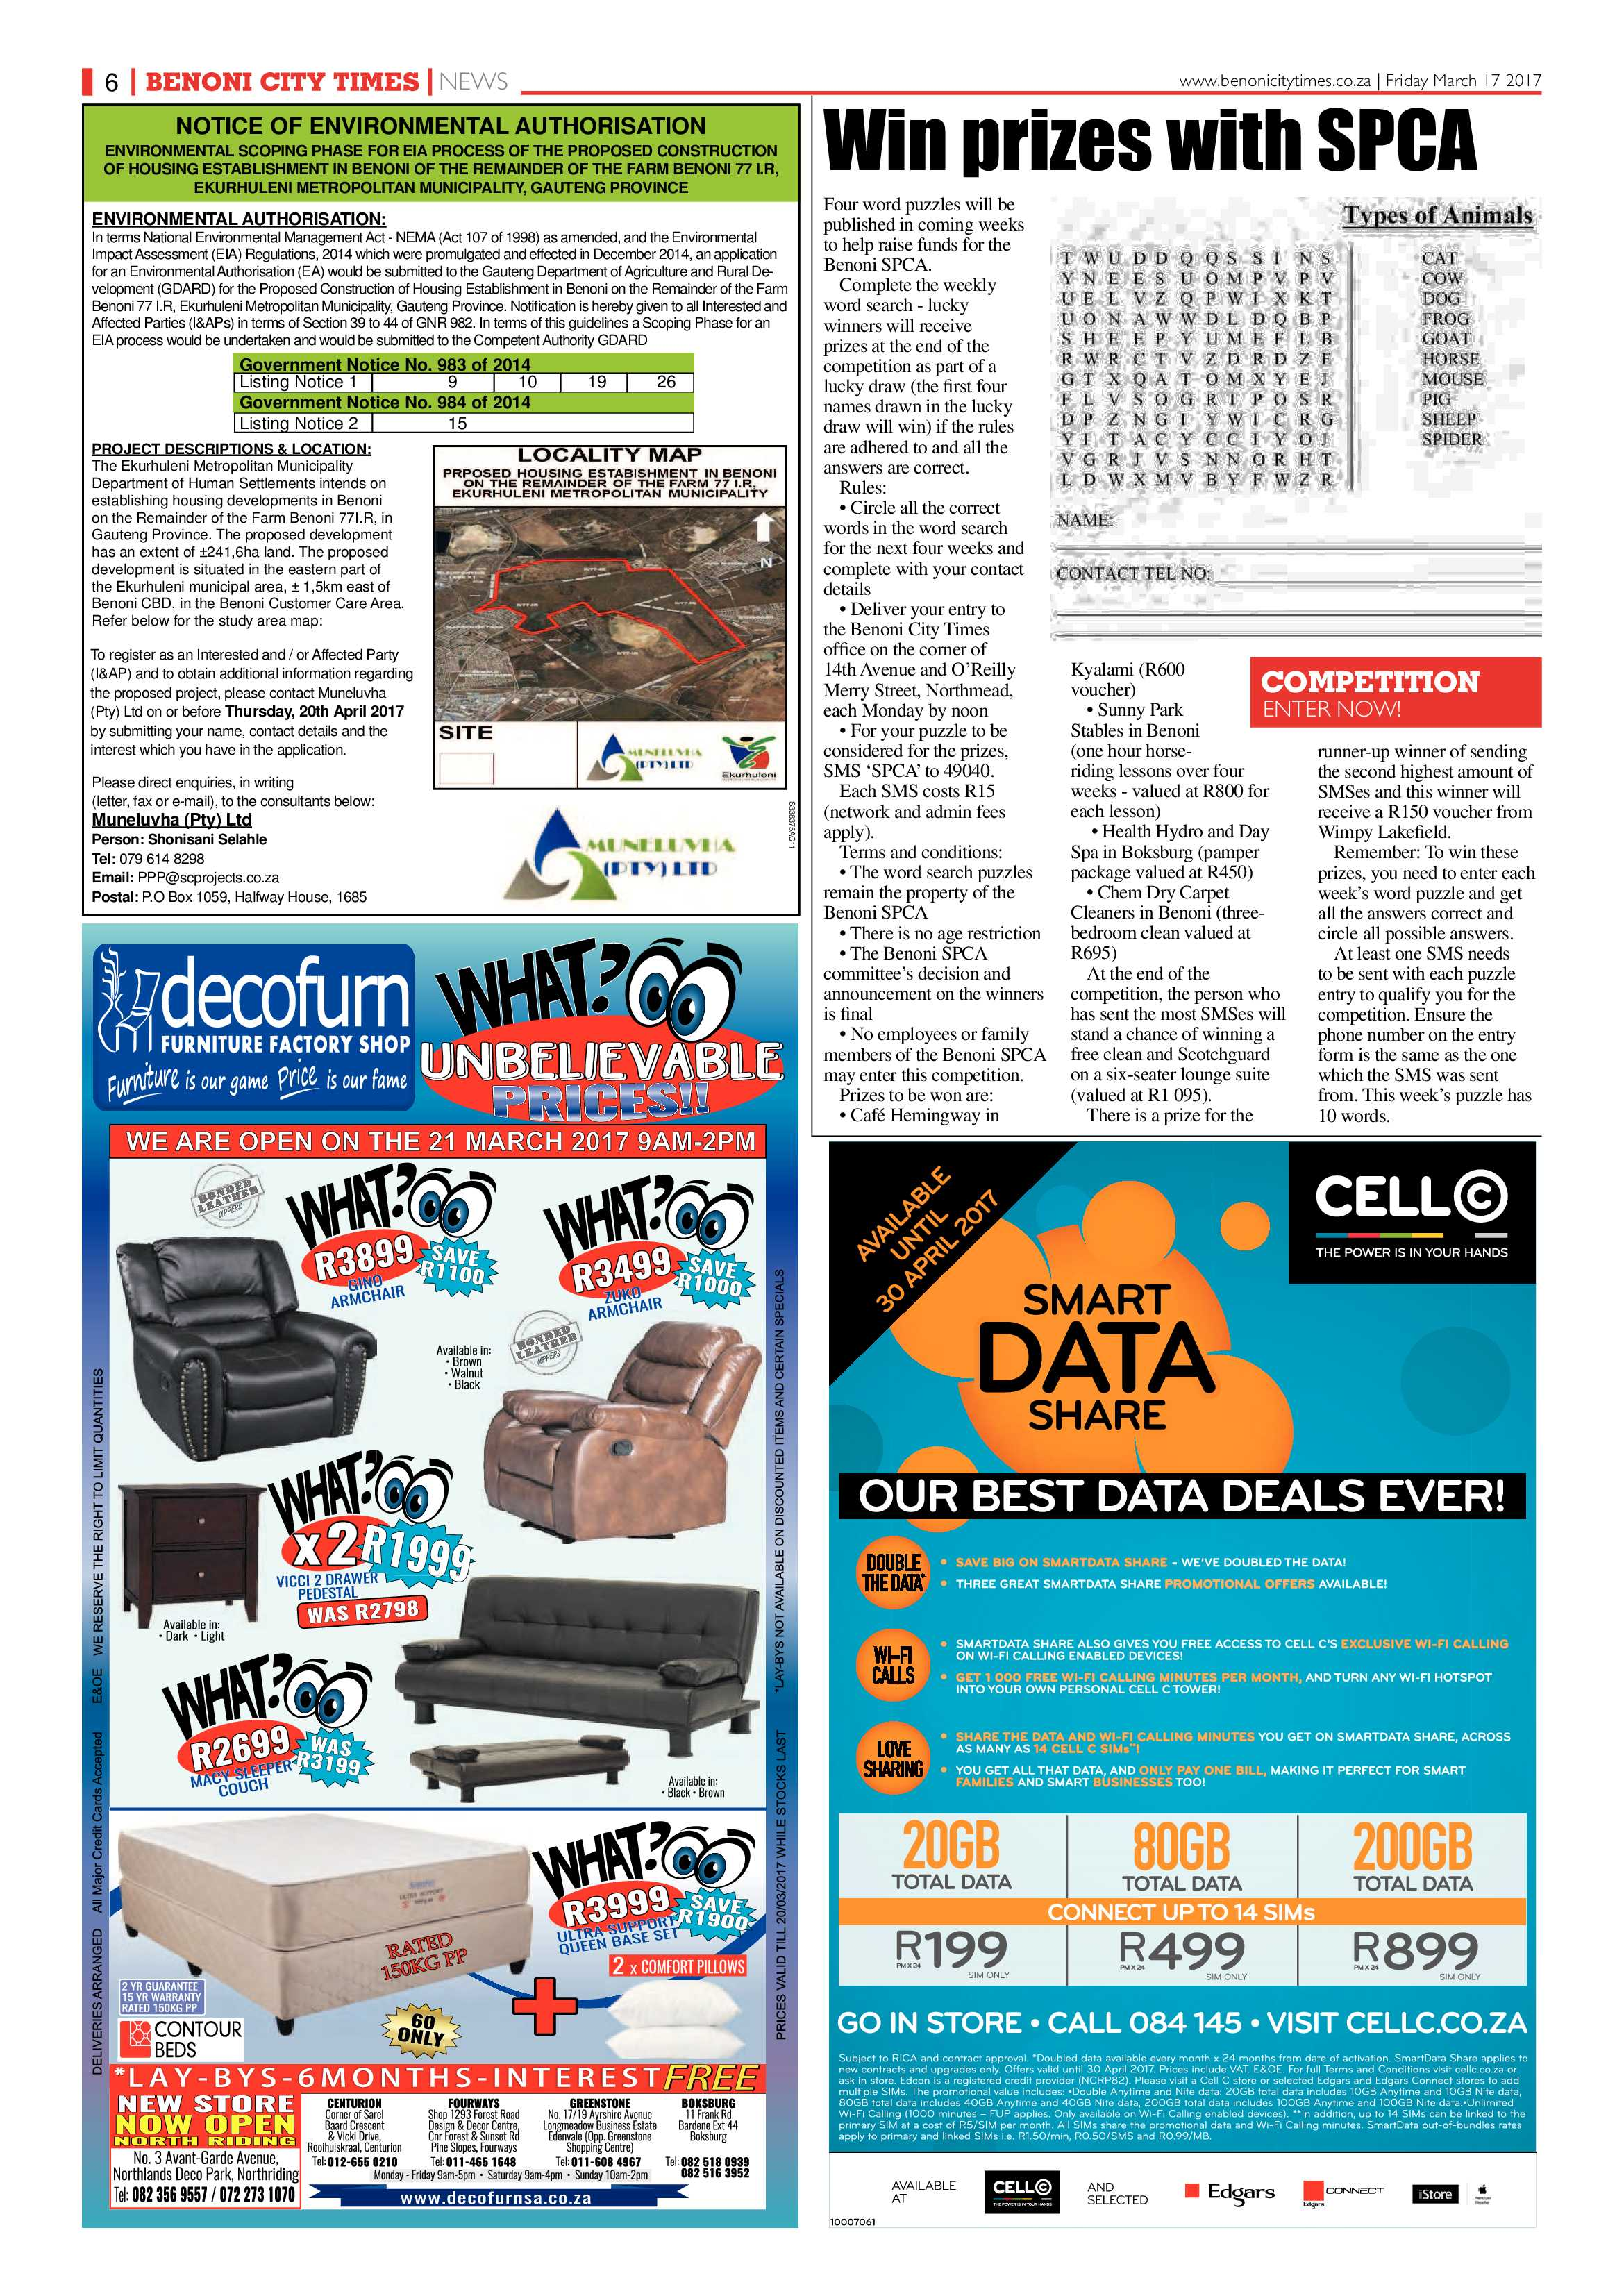 benoni-city-times-16-march-2017-epapers-page-6